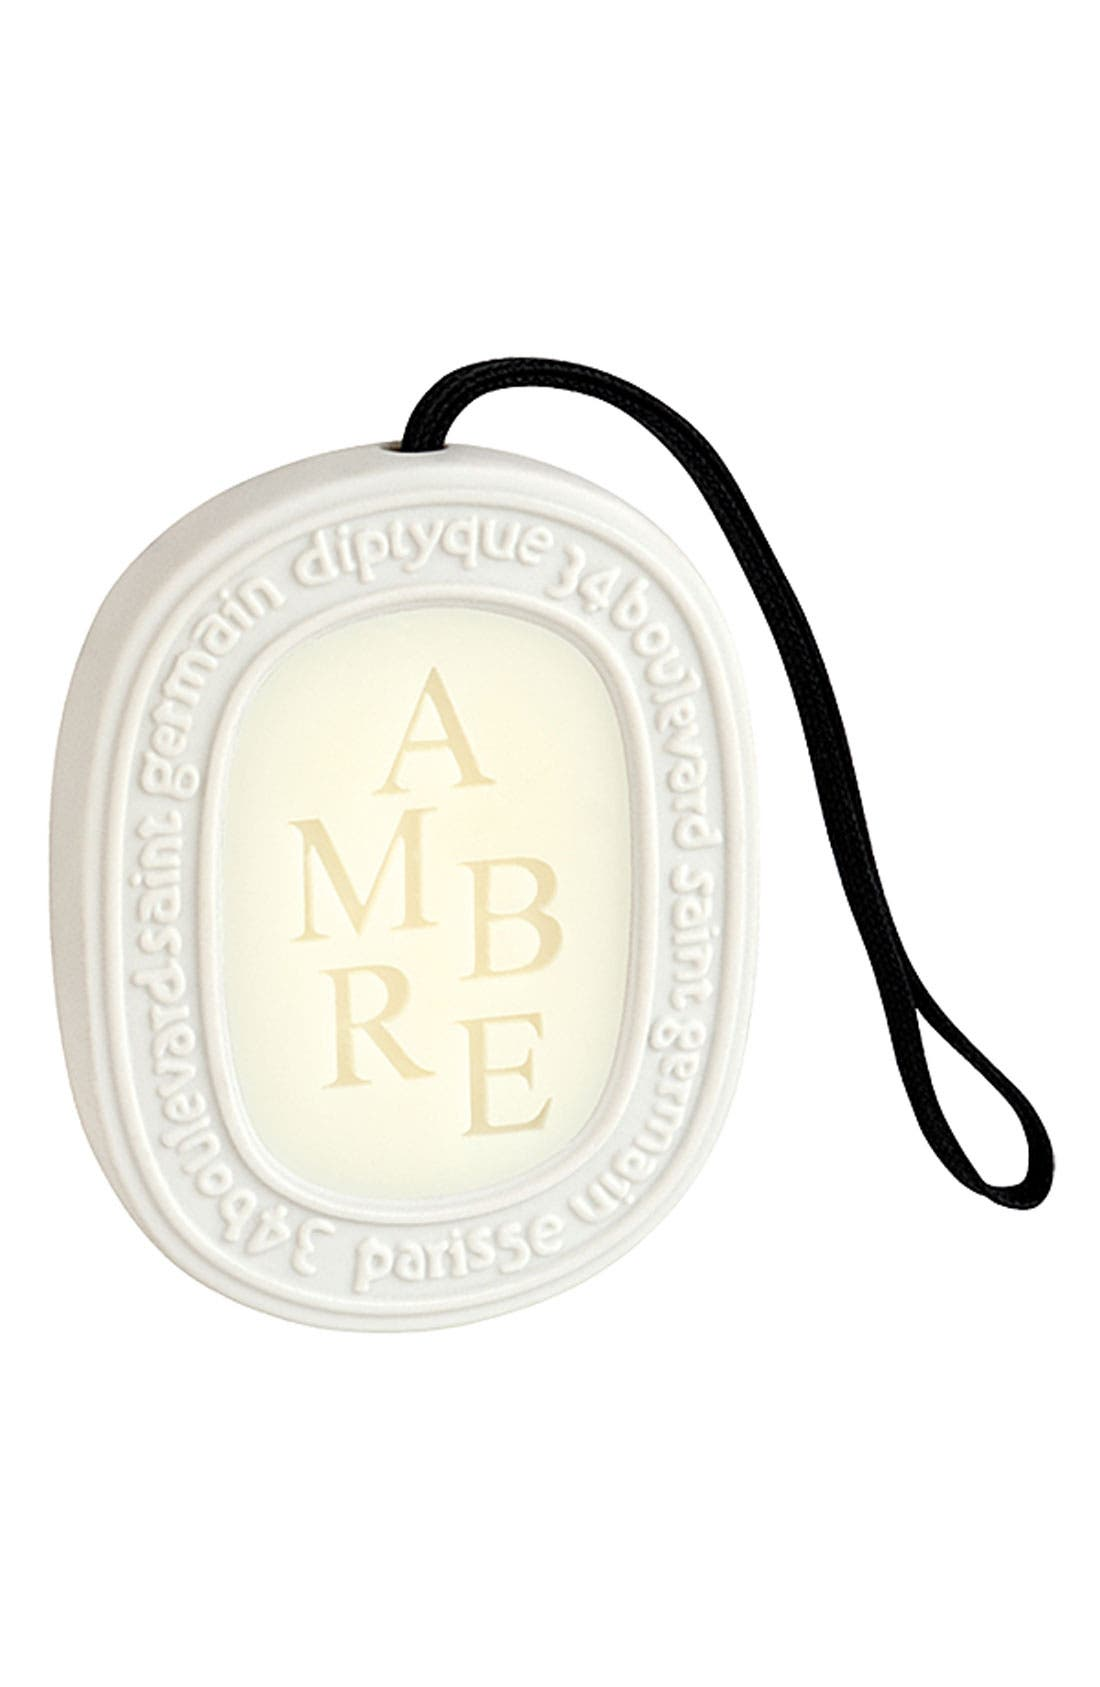 Main Image - diptyque 'Ambre' Scented Oval